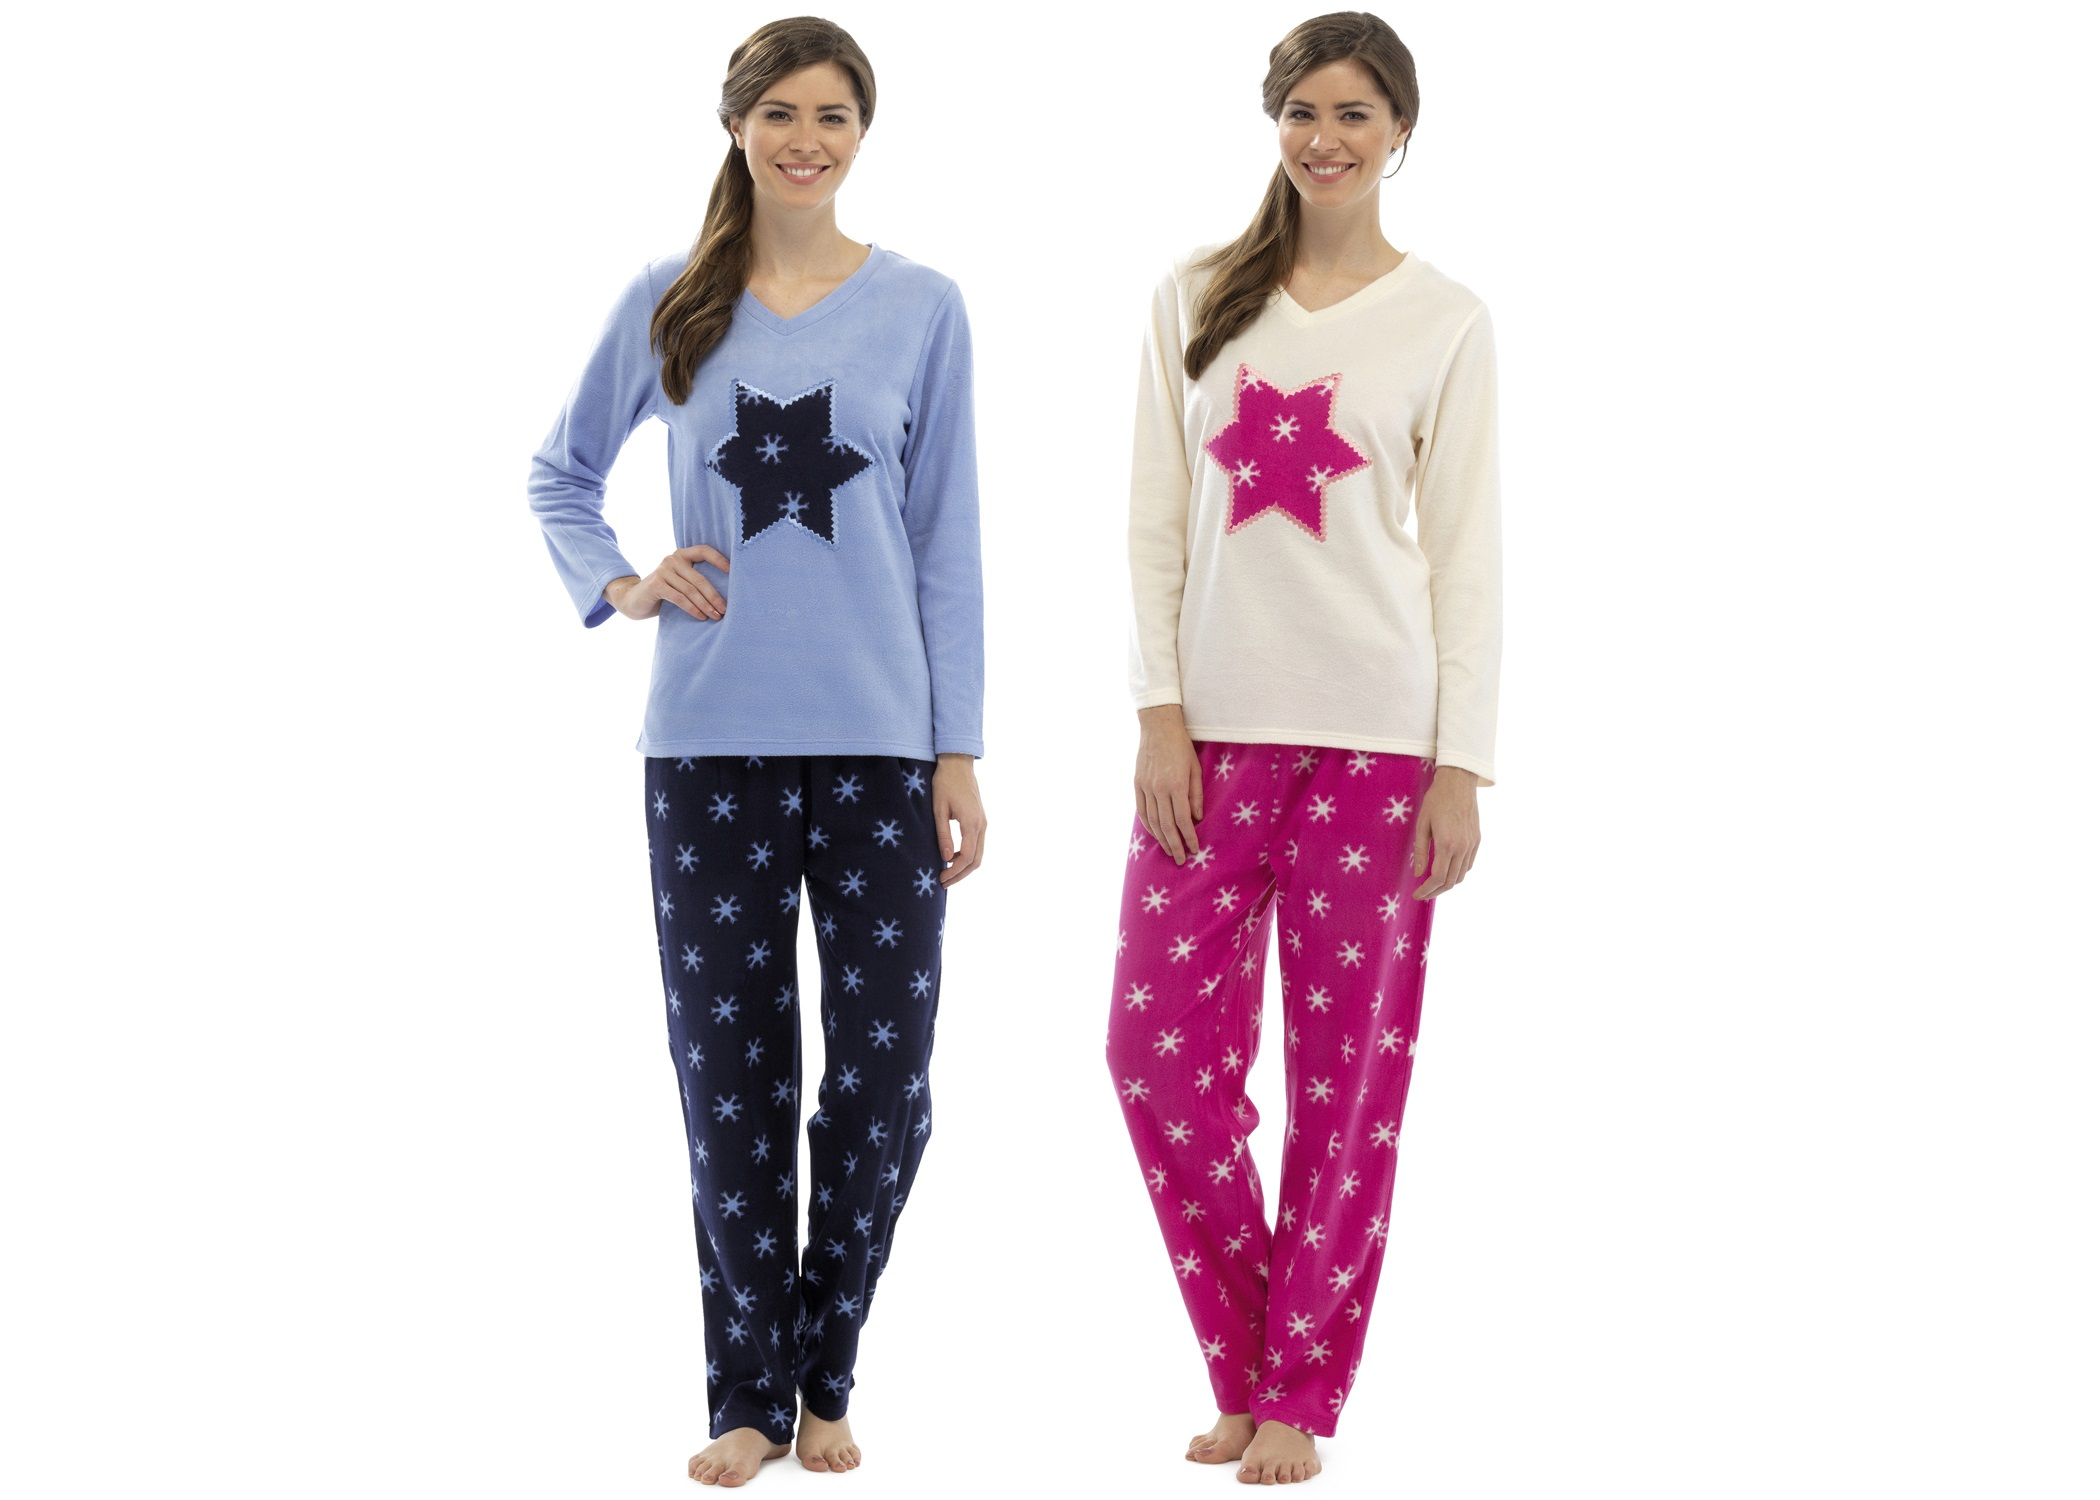 de267dd8e5 Womens Fleece Pyjamas Full Length Pjs Long Sleeve Lounge Set Ladies ...